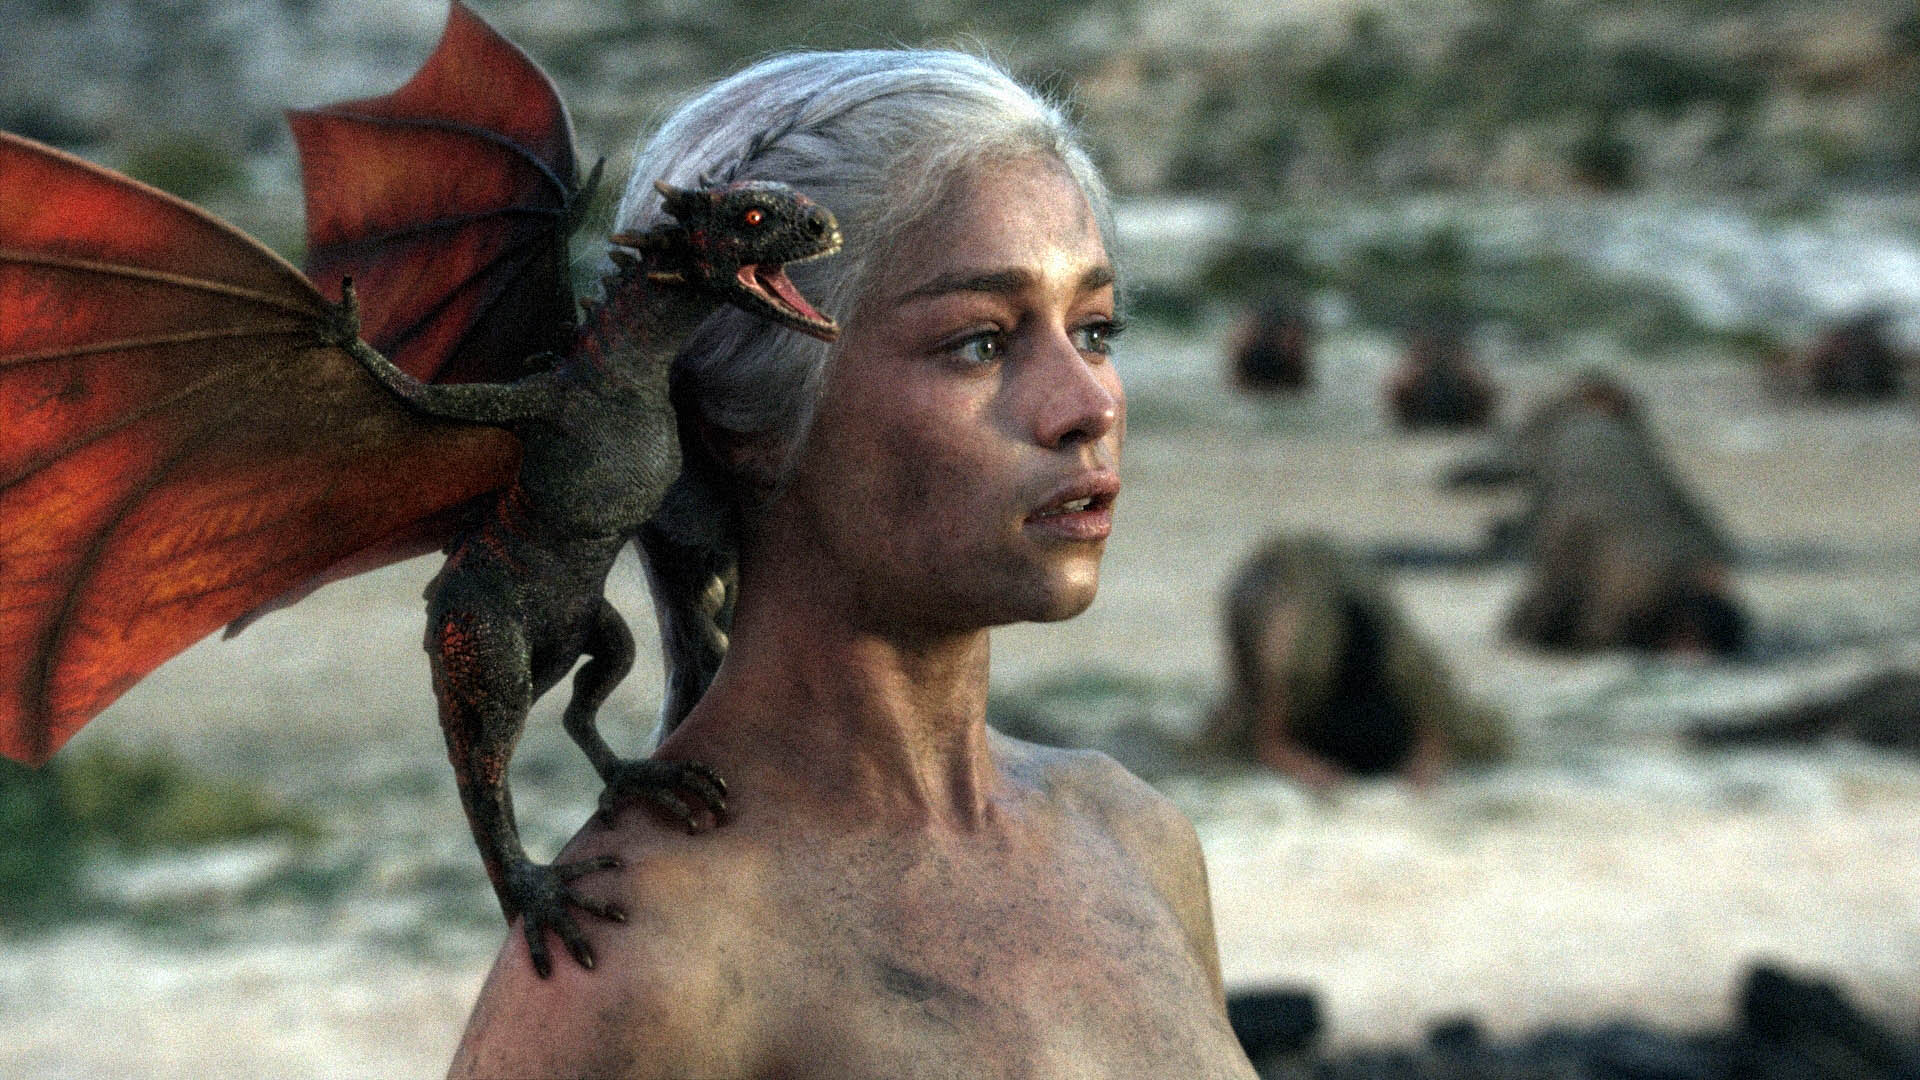 Game of Thrones Photo 1920x1080 Wallpapers 1920x1080 Wallpapers 1920x1080